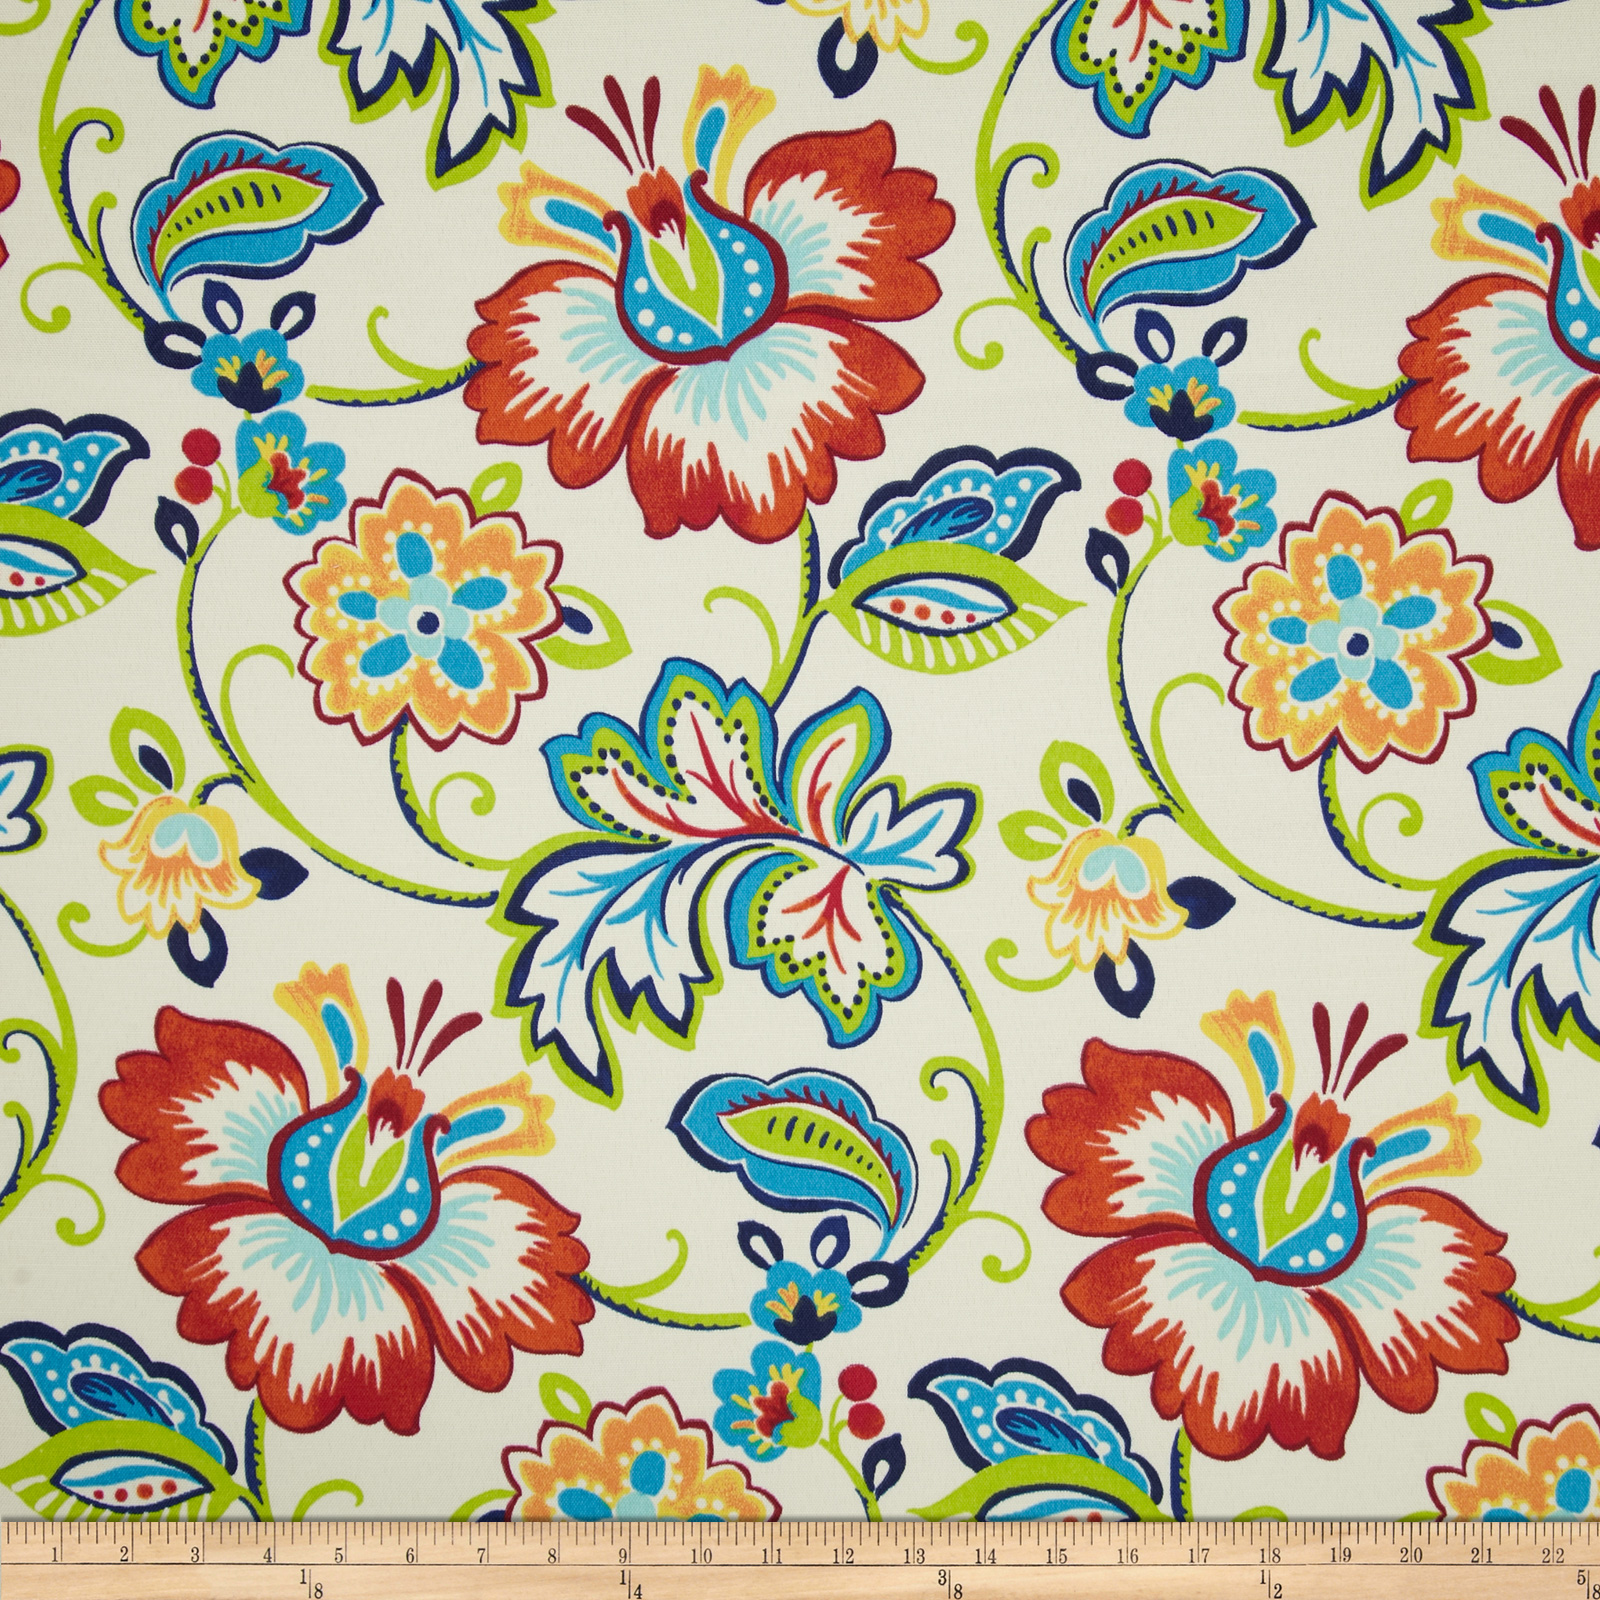 Bryant Indoor/Outdoor Midori Celestial Fabric by Bryant in USA